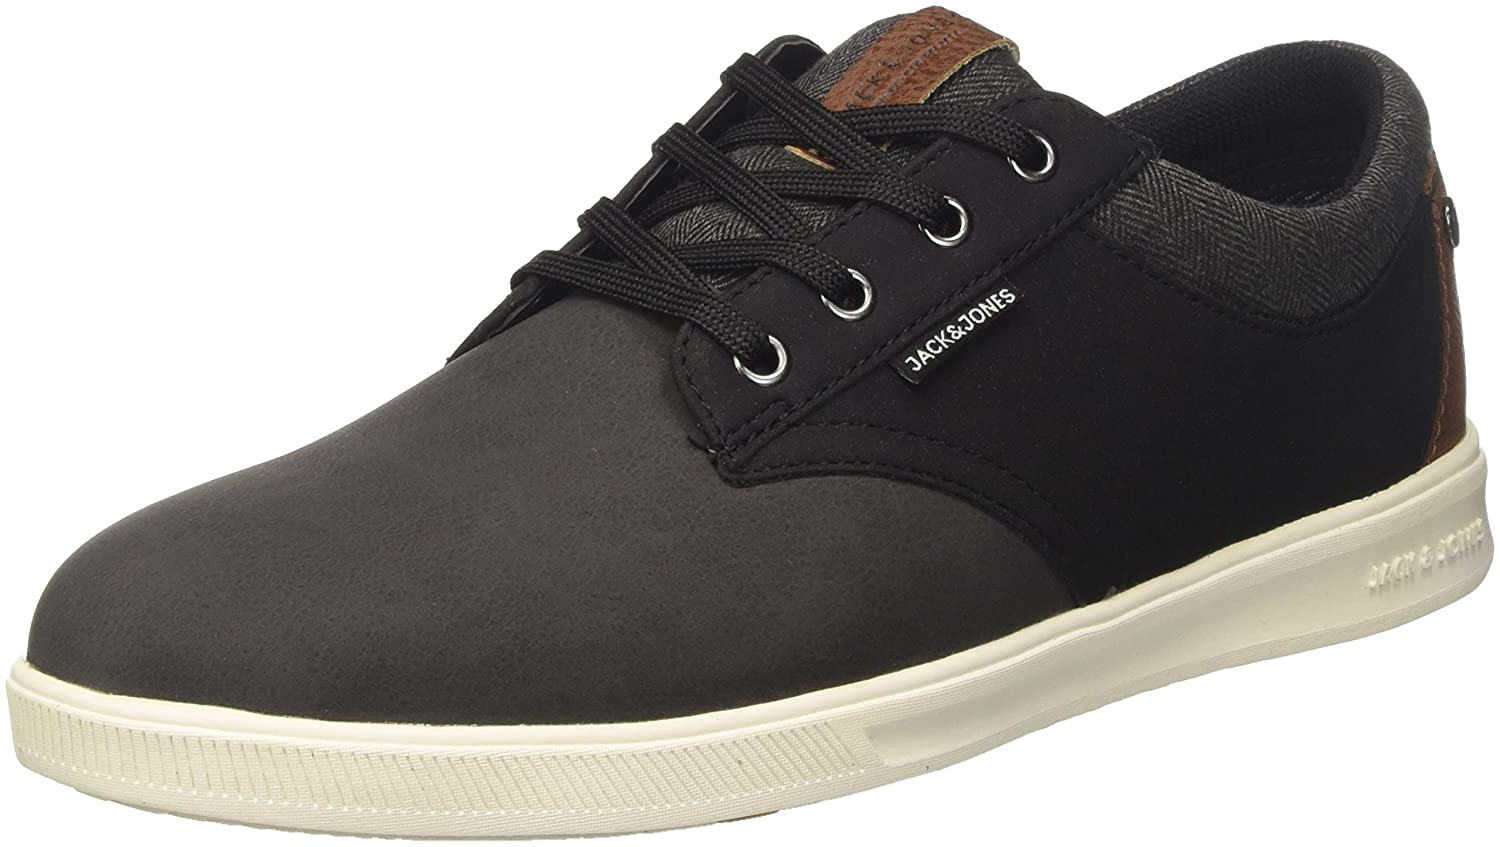 TALLA 43 EU. Jack & Jones Jfwgaston PU Combo Anthracite, Zapatillas para Hombre